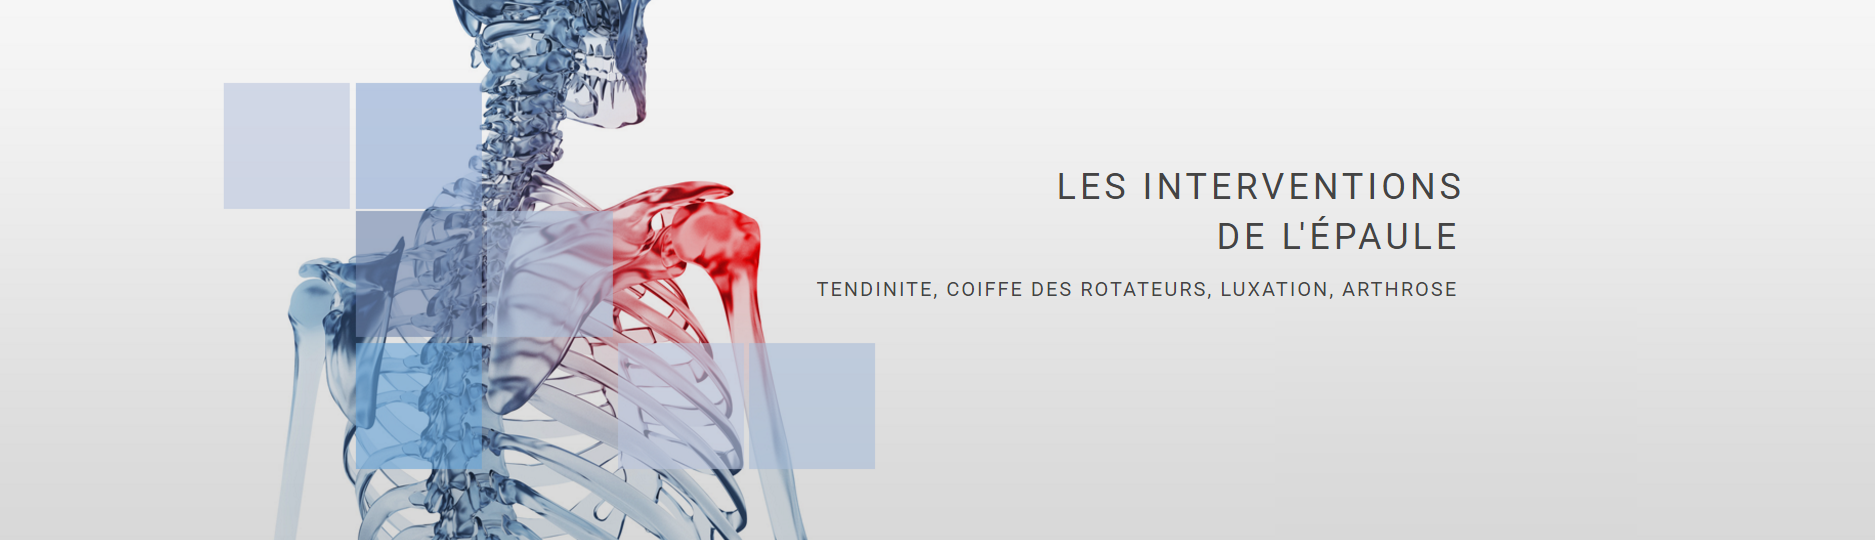 intervention-epaule-chirurgie-orthopedique-traumatologie-nice-docteur-gael-poiree-slide-1